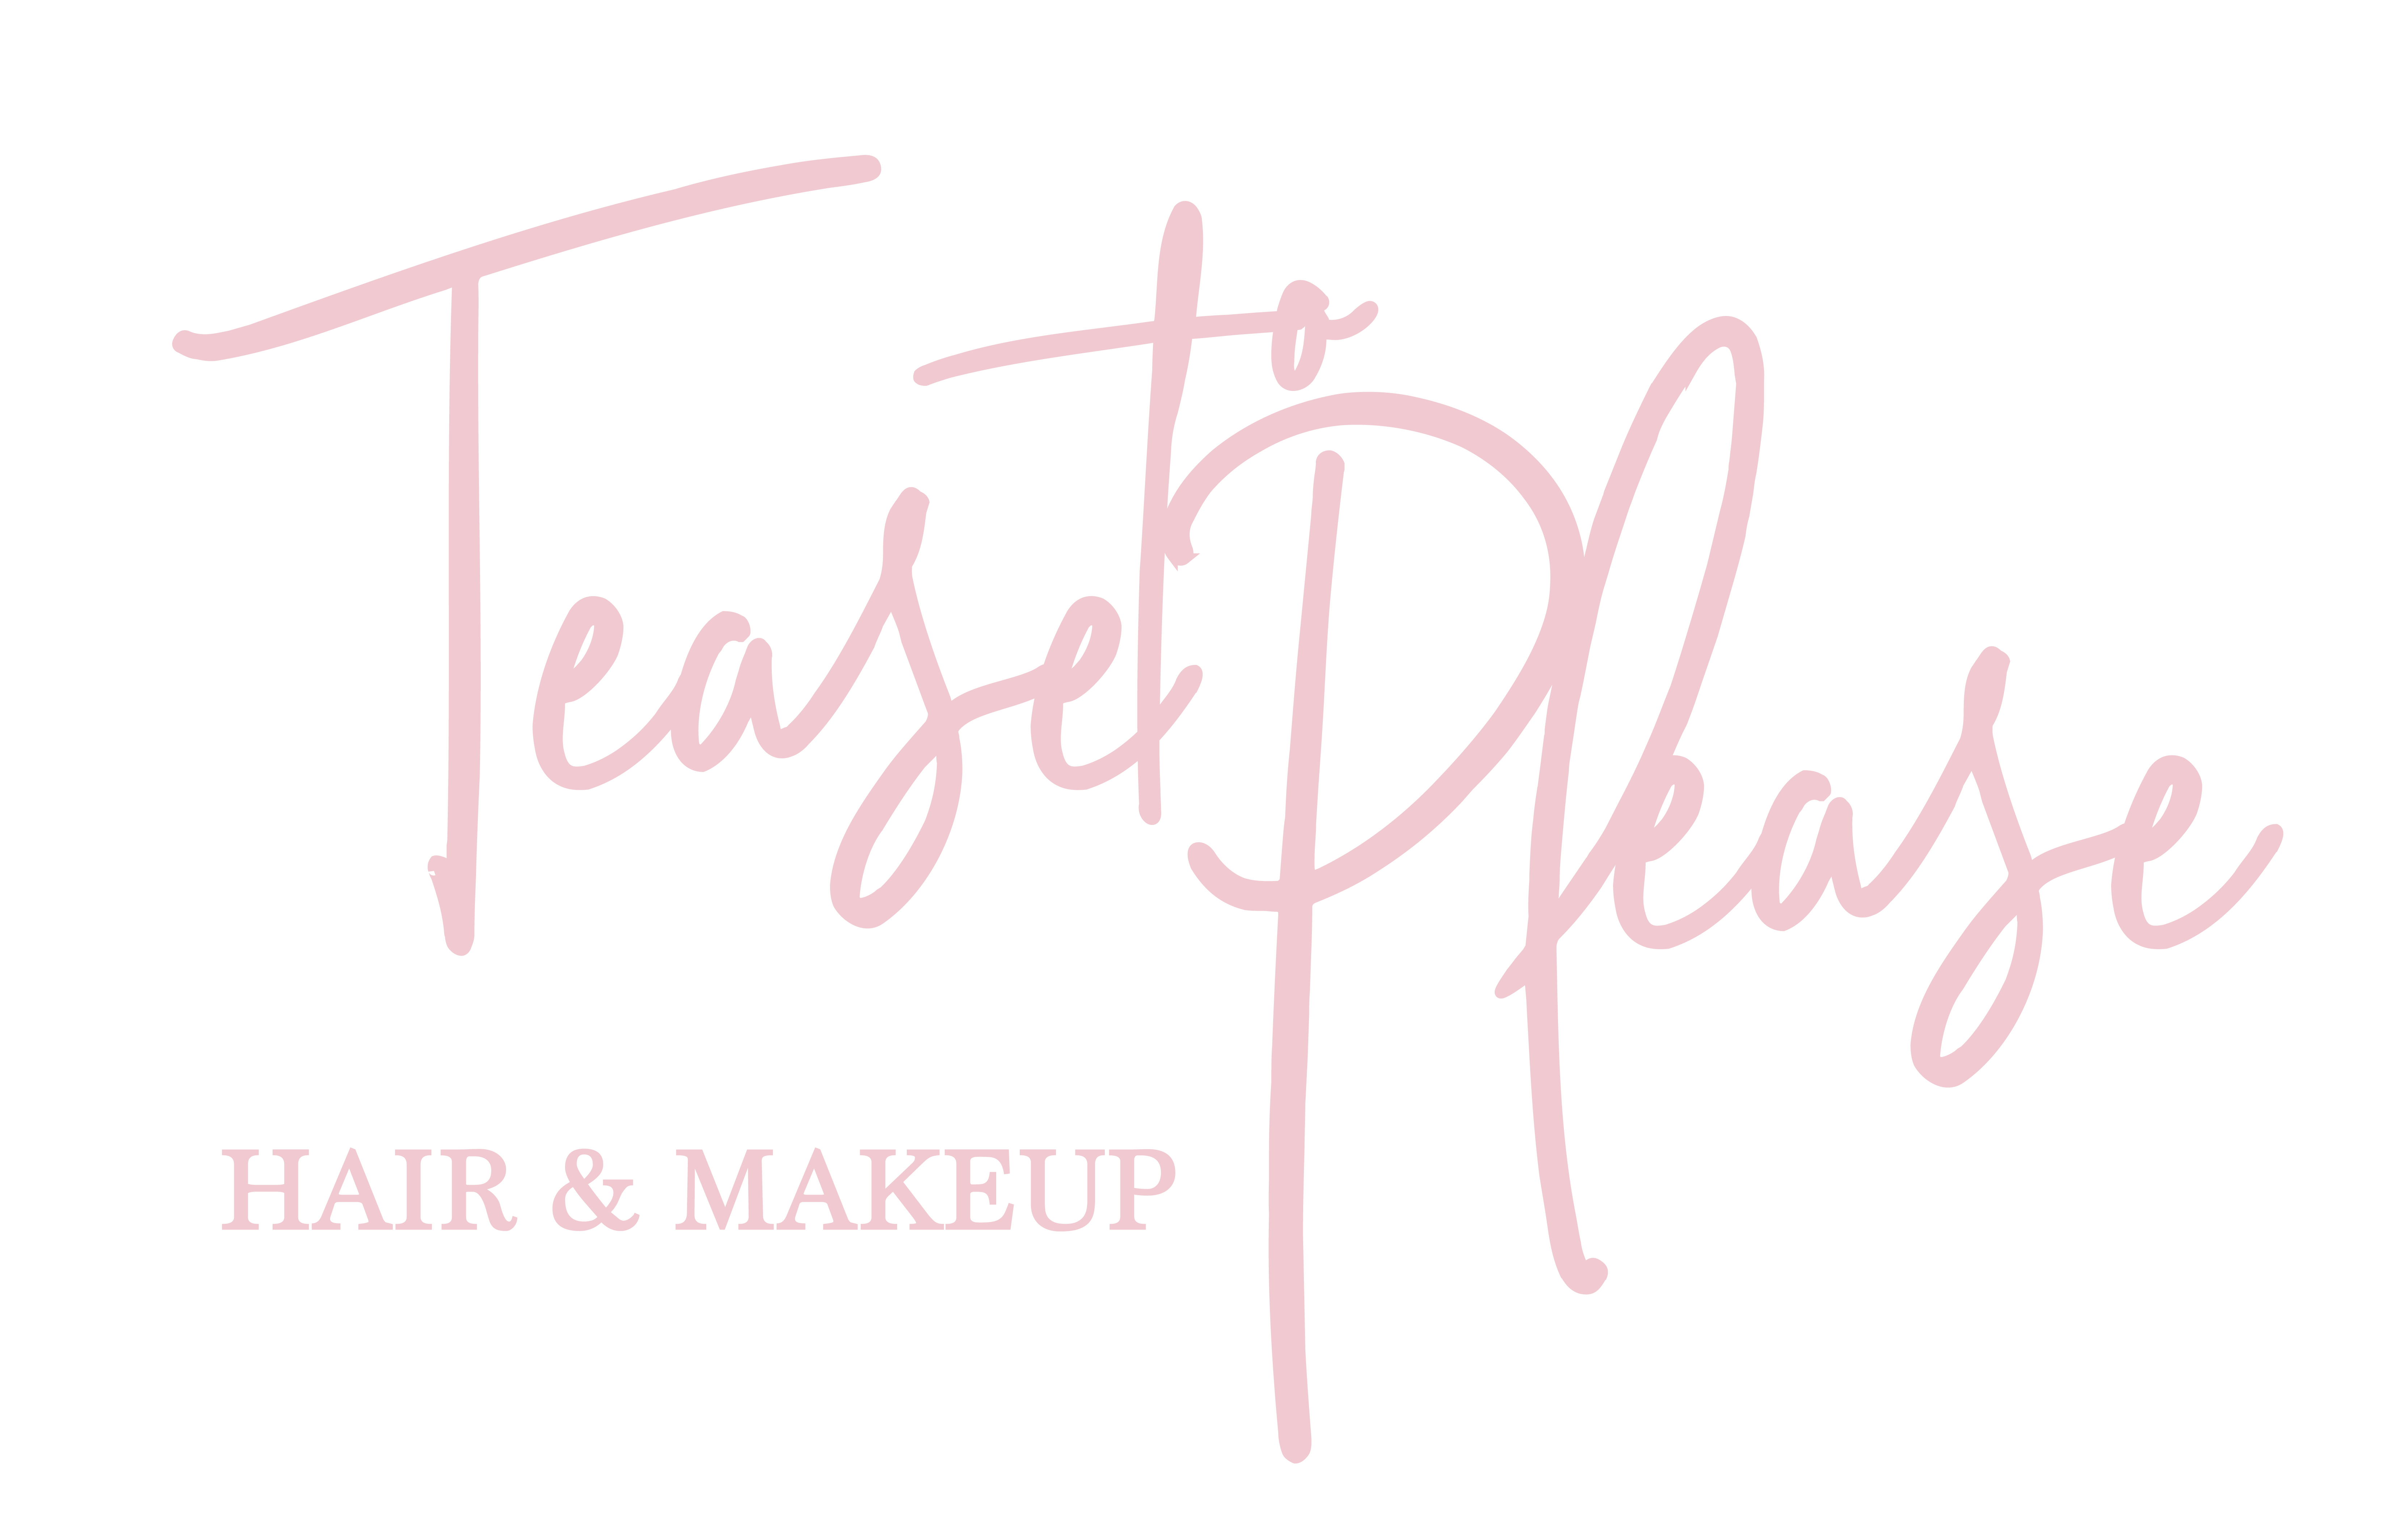 Tease to Please Hair and Makeup Beauty